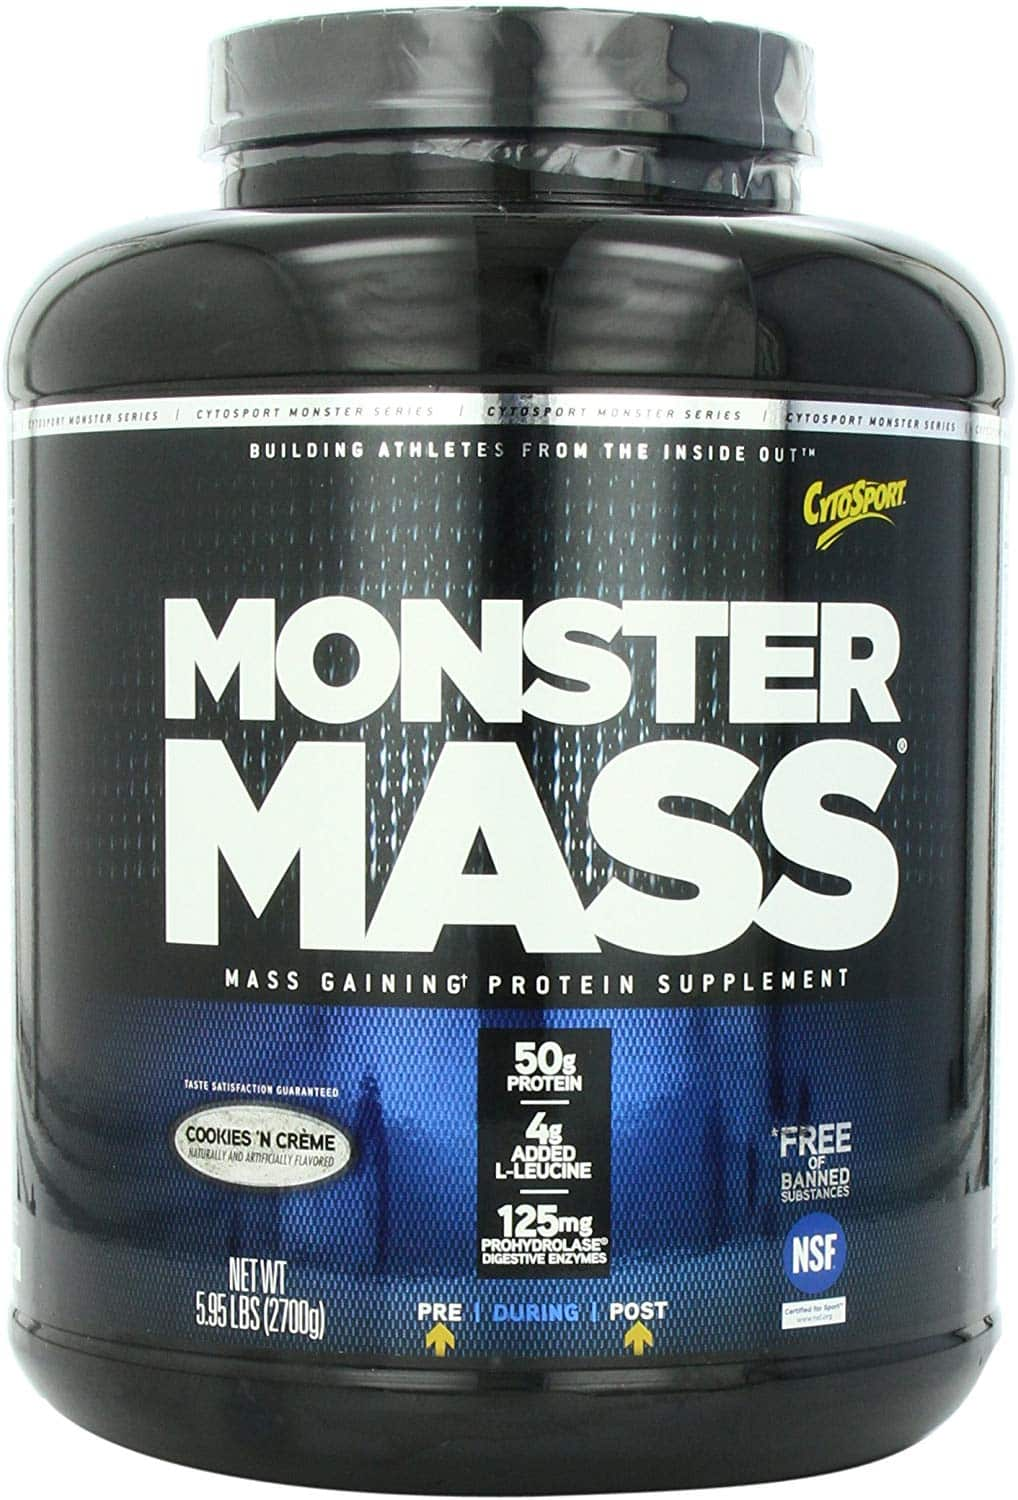 Susu-CytoSport-Monster-Mass